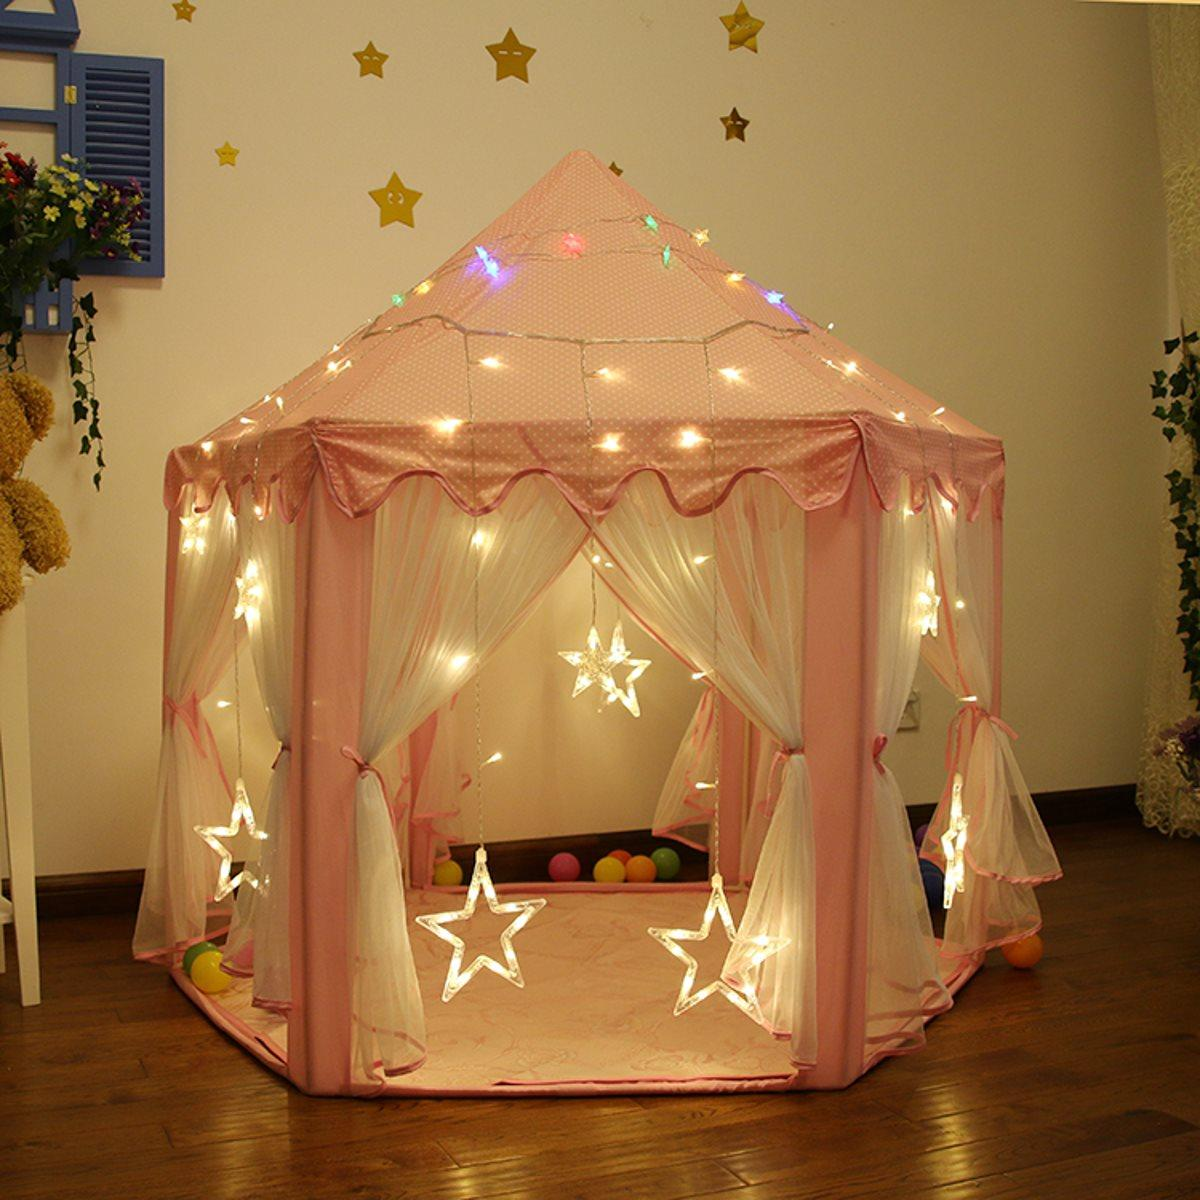 official photos cdee4 6f63b Portable Princess Castle Play Tent With Led Light Children Activity Fairy  House Kids Funny Indoor Outdoor Playhouse Playing Toy Play Tunnel Tent Big  ...